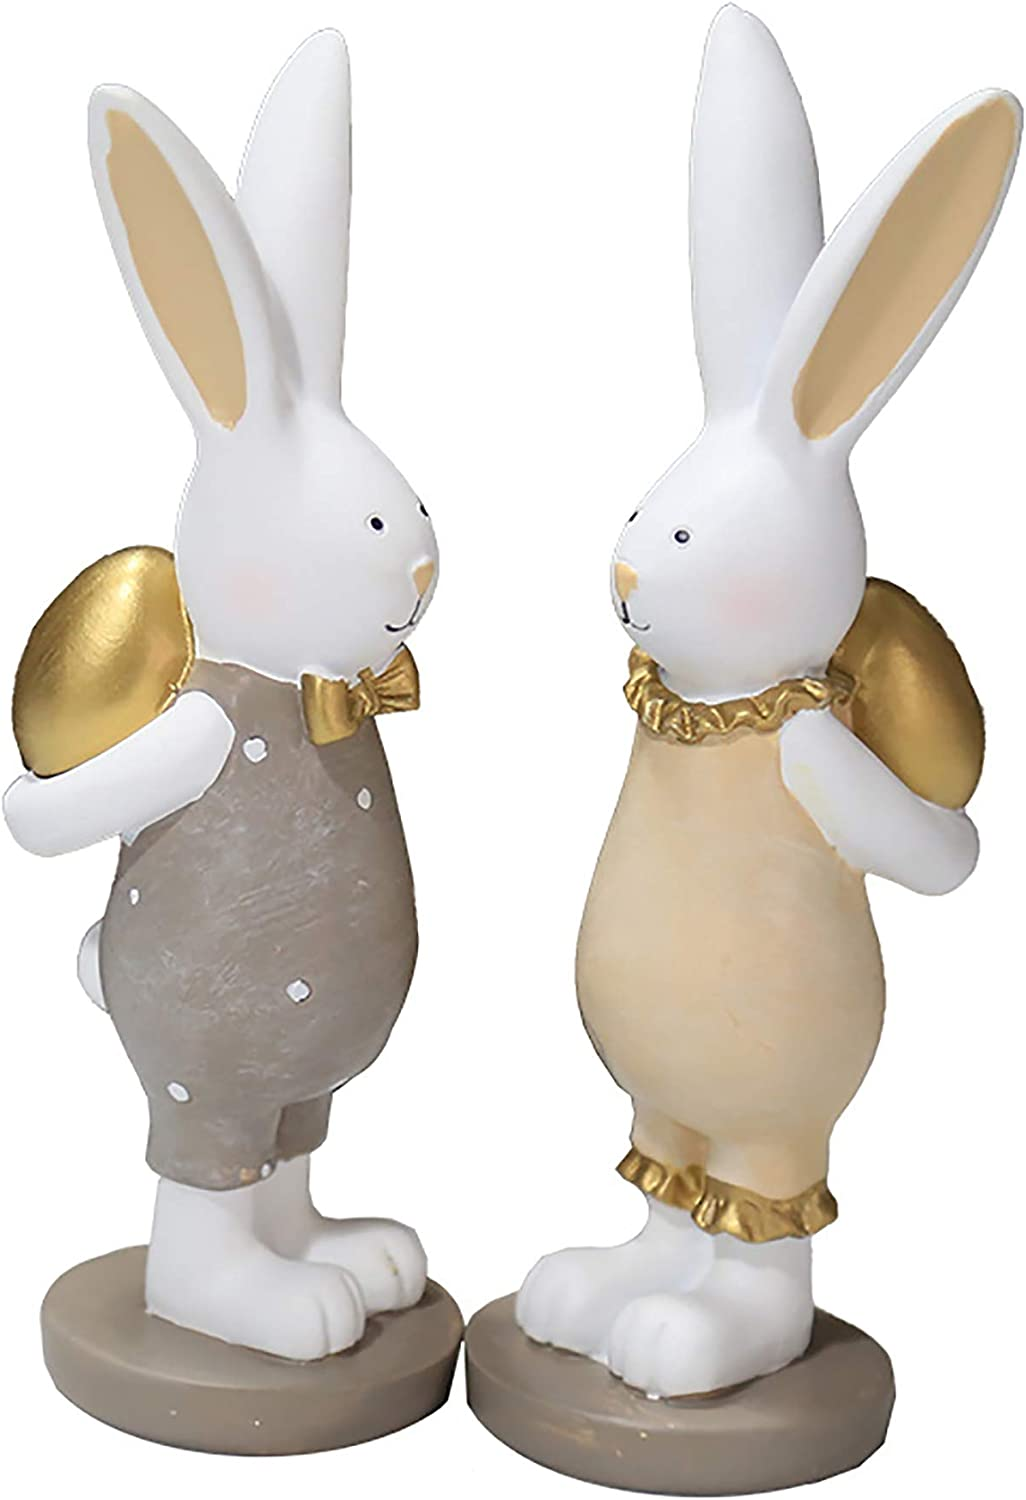 Rabbit Sculpture Cartoon Bunny Resin Craftwork Decorative Ornaments Easter Decoration Rabbit Miniature Rabbit Figurines Garden Animal Statues for Home Office Shops (Style A, One Size)